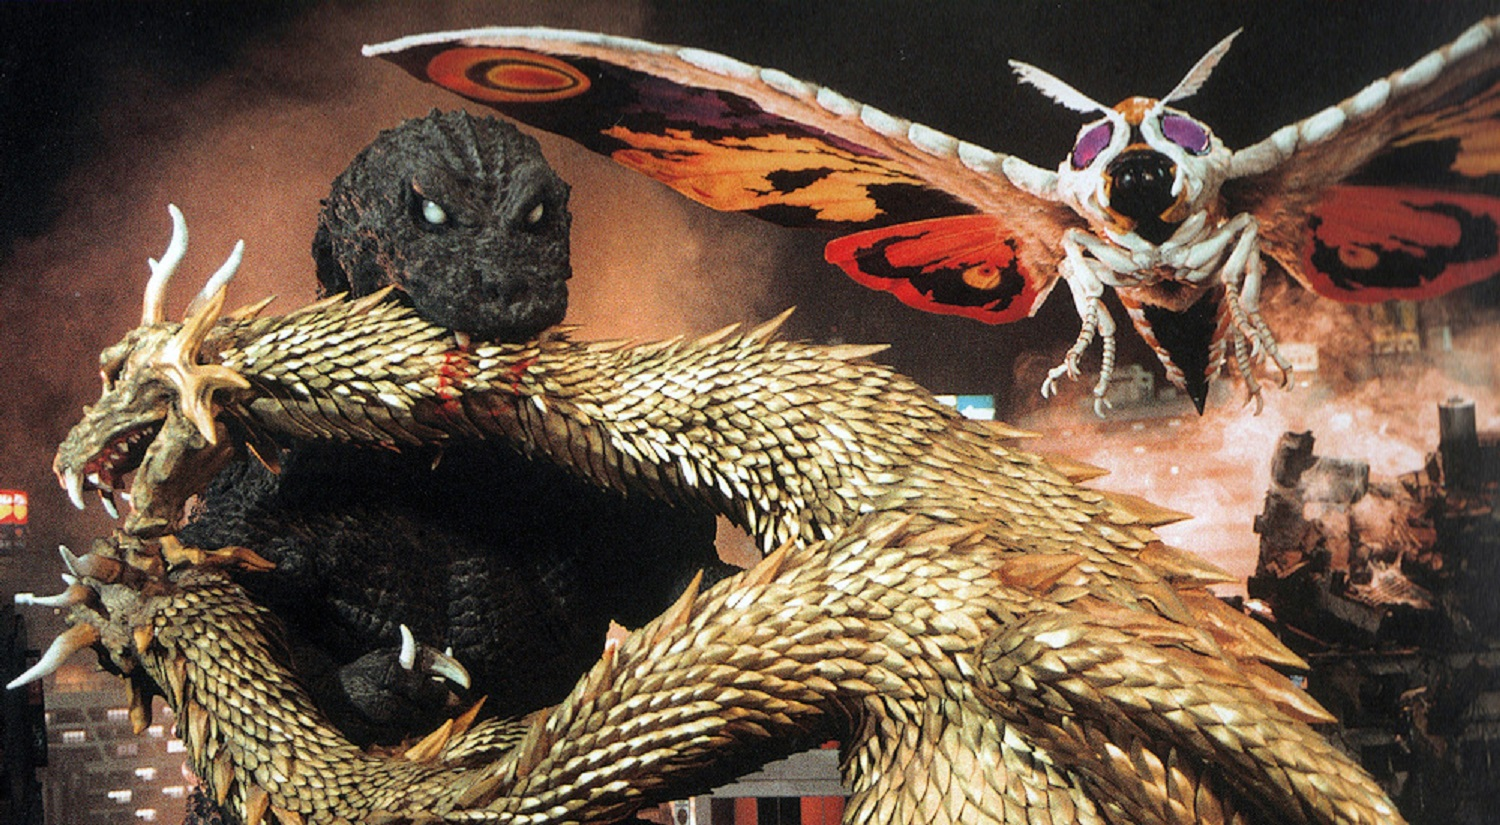 Monster line-up - Godzilla, King Ghidorah and Mothra in Godzilla Mothra and King Ghidorah: Giant Monsters All-Out Attack (2001)